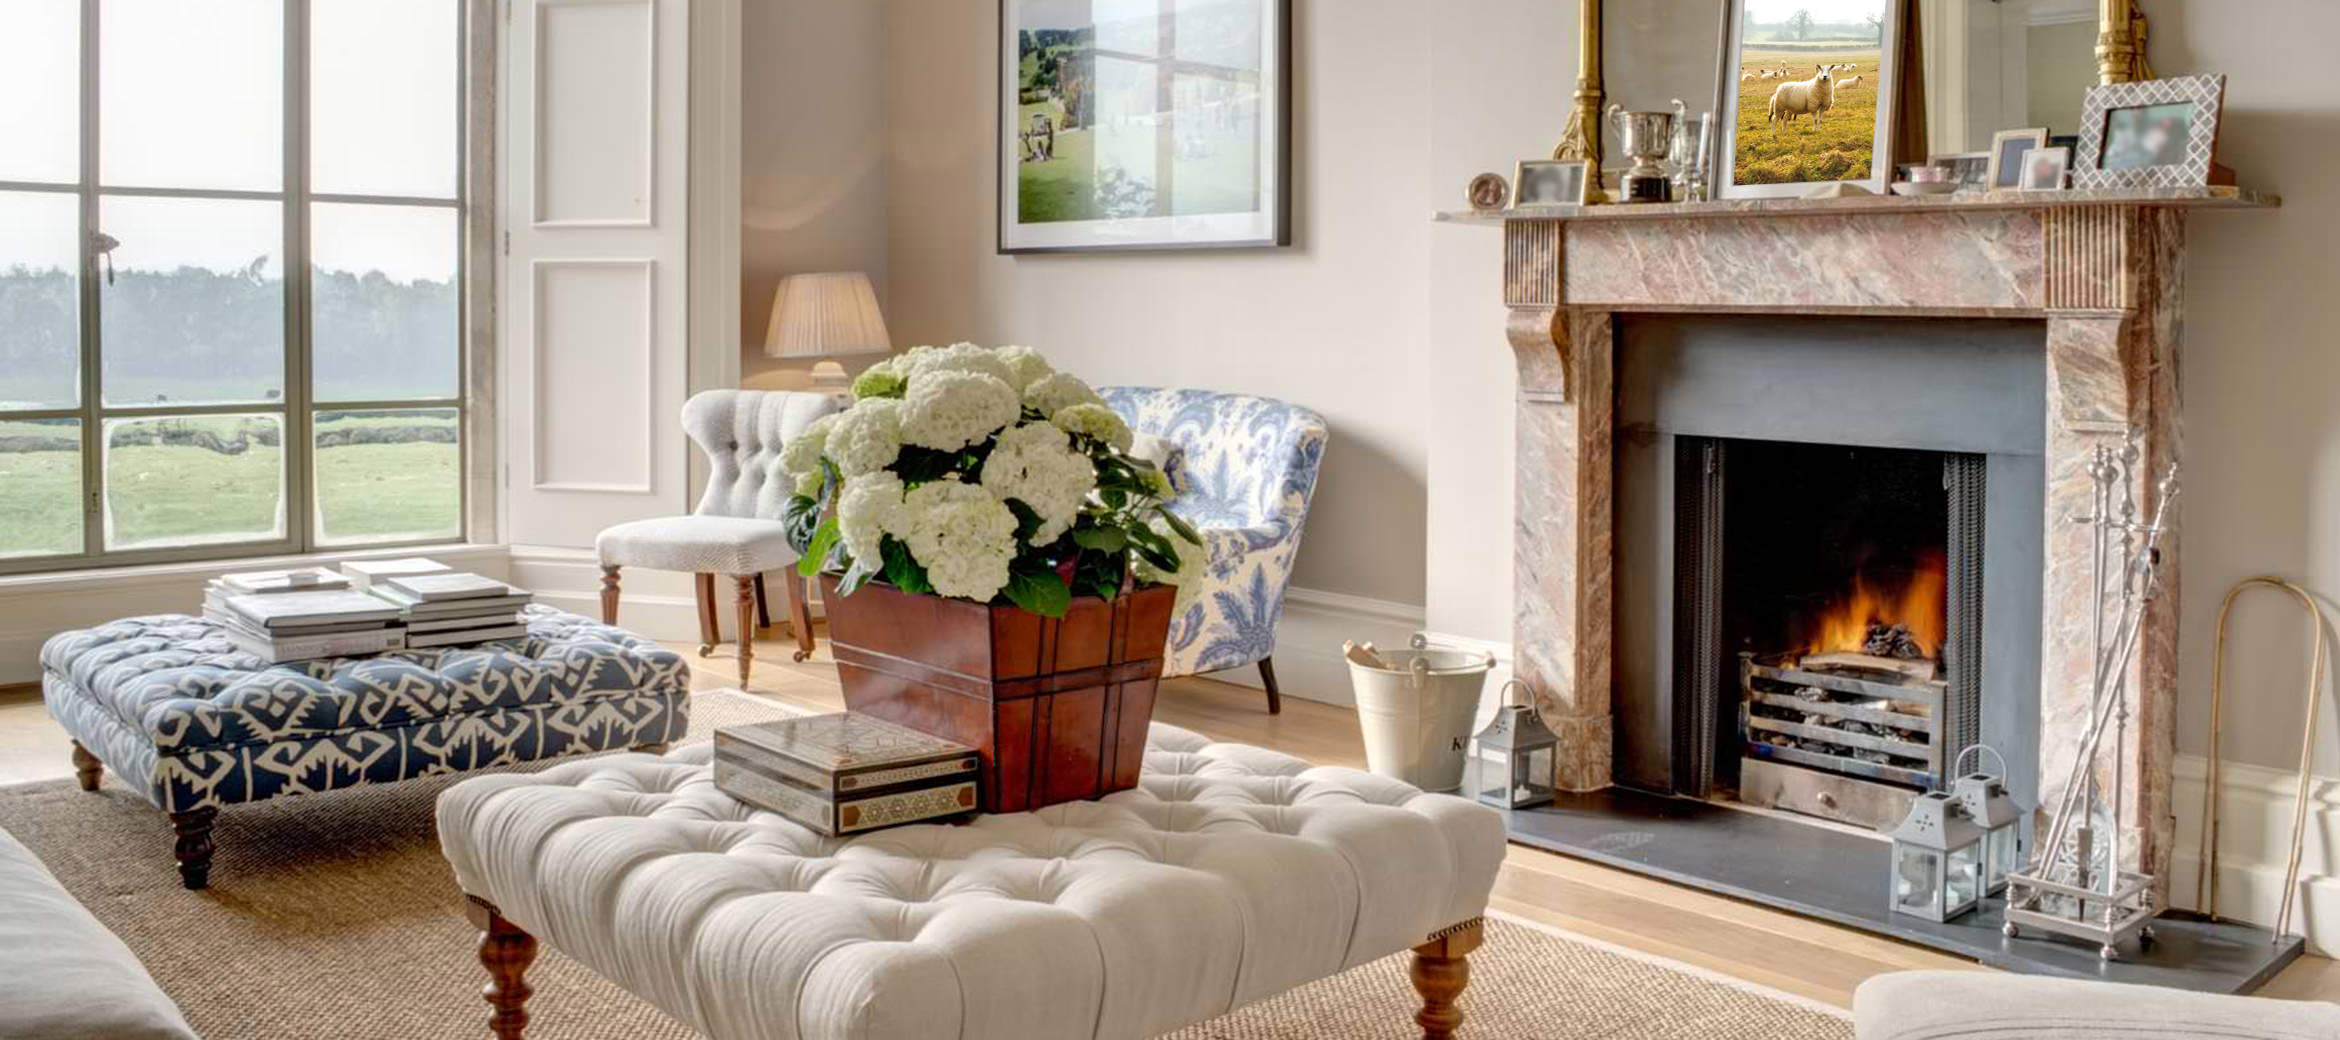 luxury-cotswold-august-house-1063-lcr-sheep